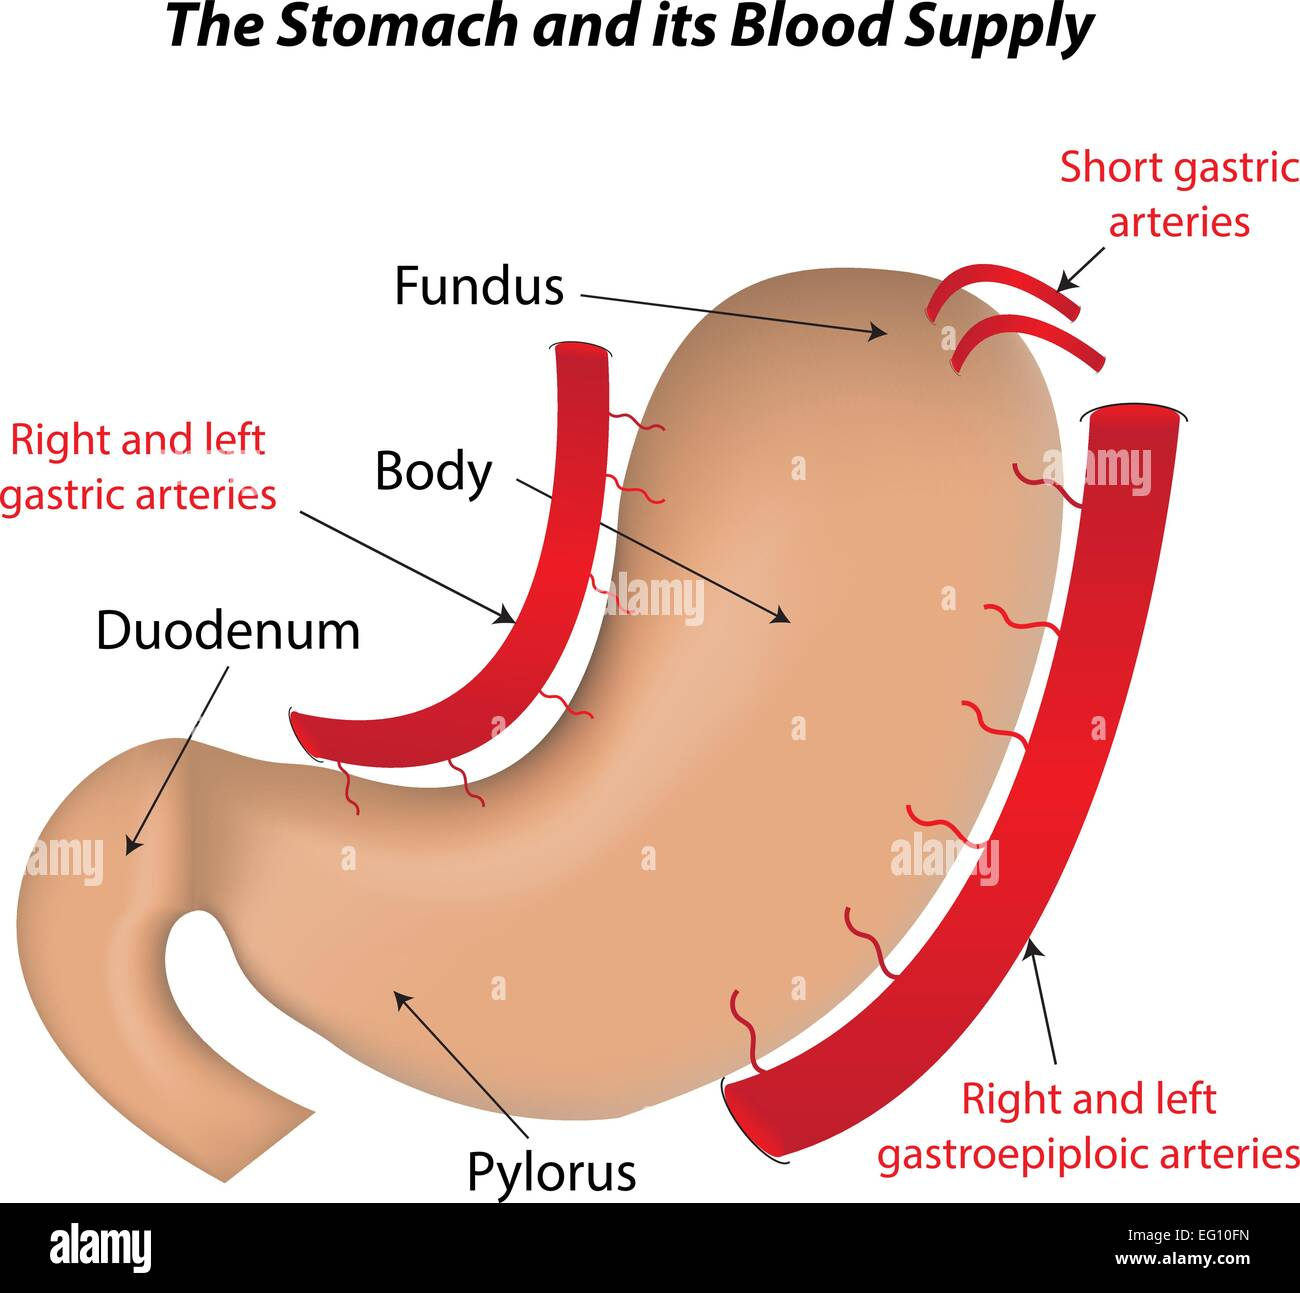 The Stomach and its Blood Supply Stock Vector Art & Illustration ...